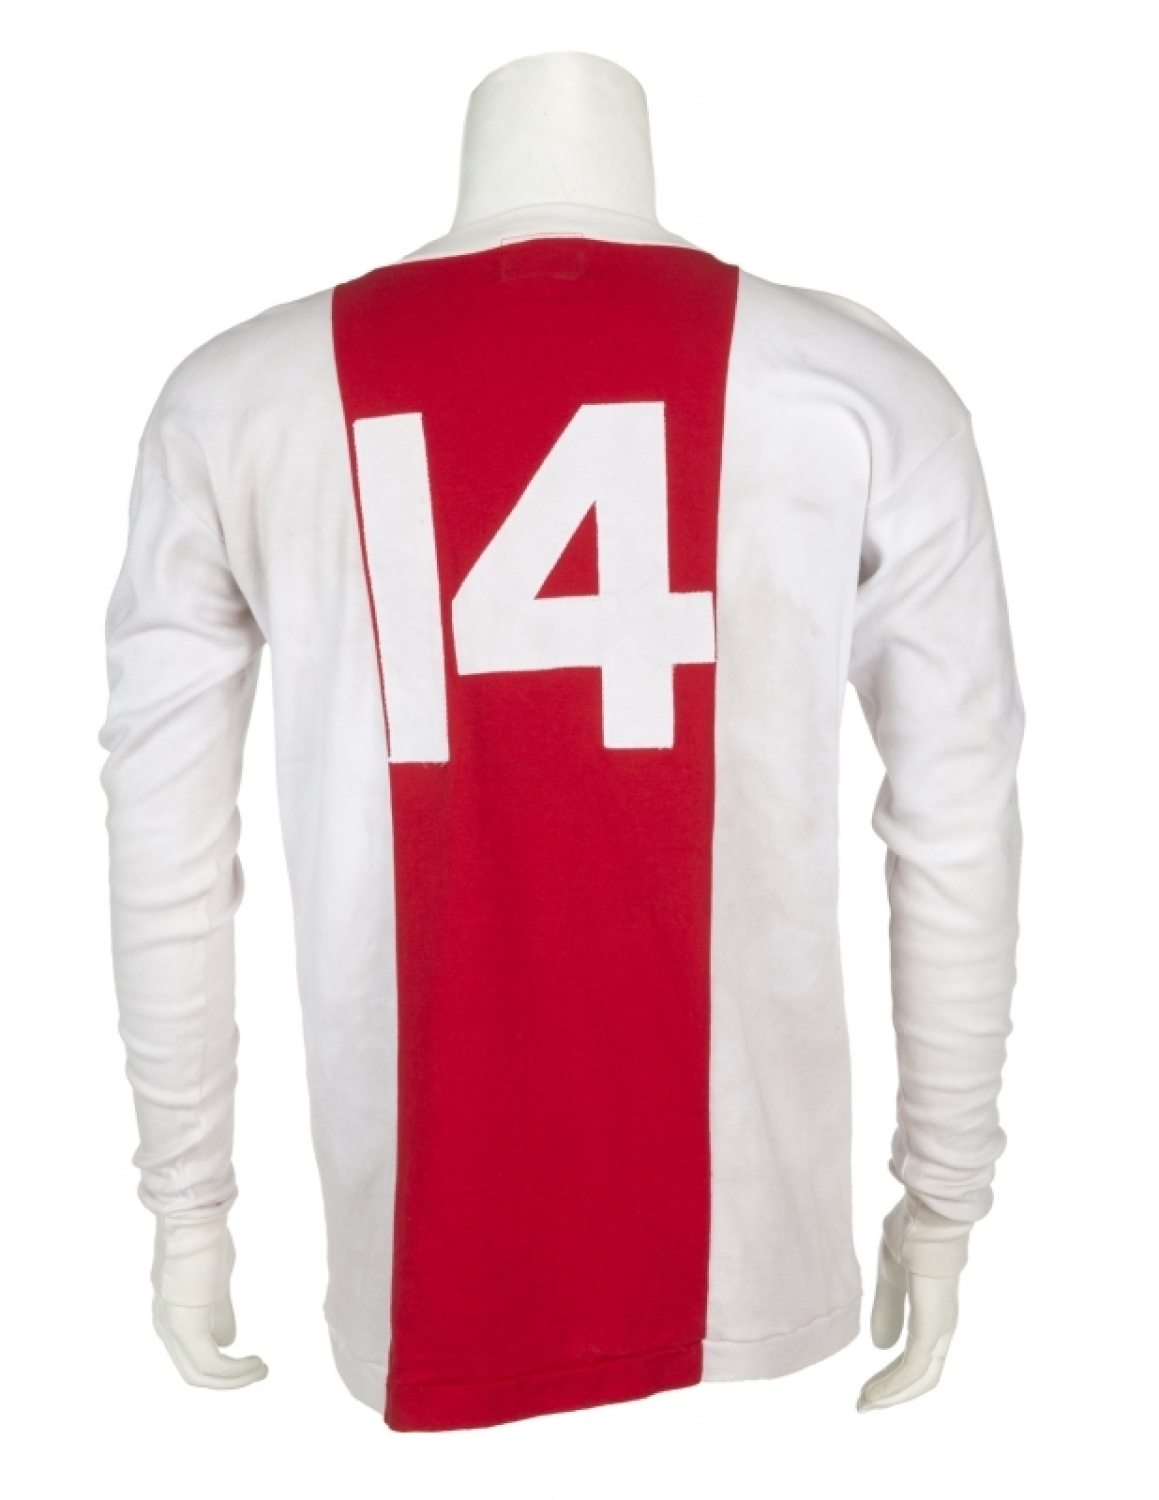 ad0a16de9 JOHAN CRUYFF MATCH WORN 1972 AJAX JERSEY Please Wait... Click image to  enlarge